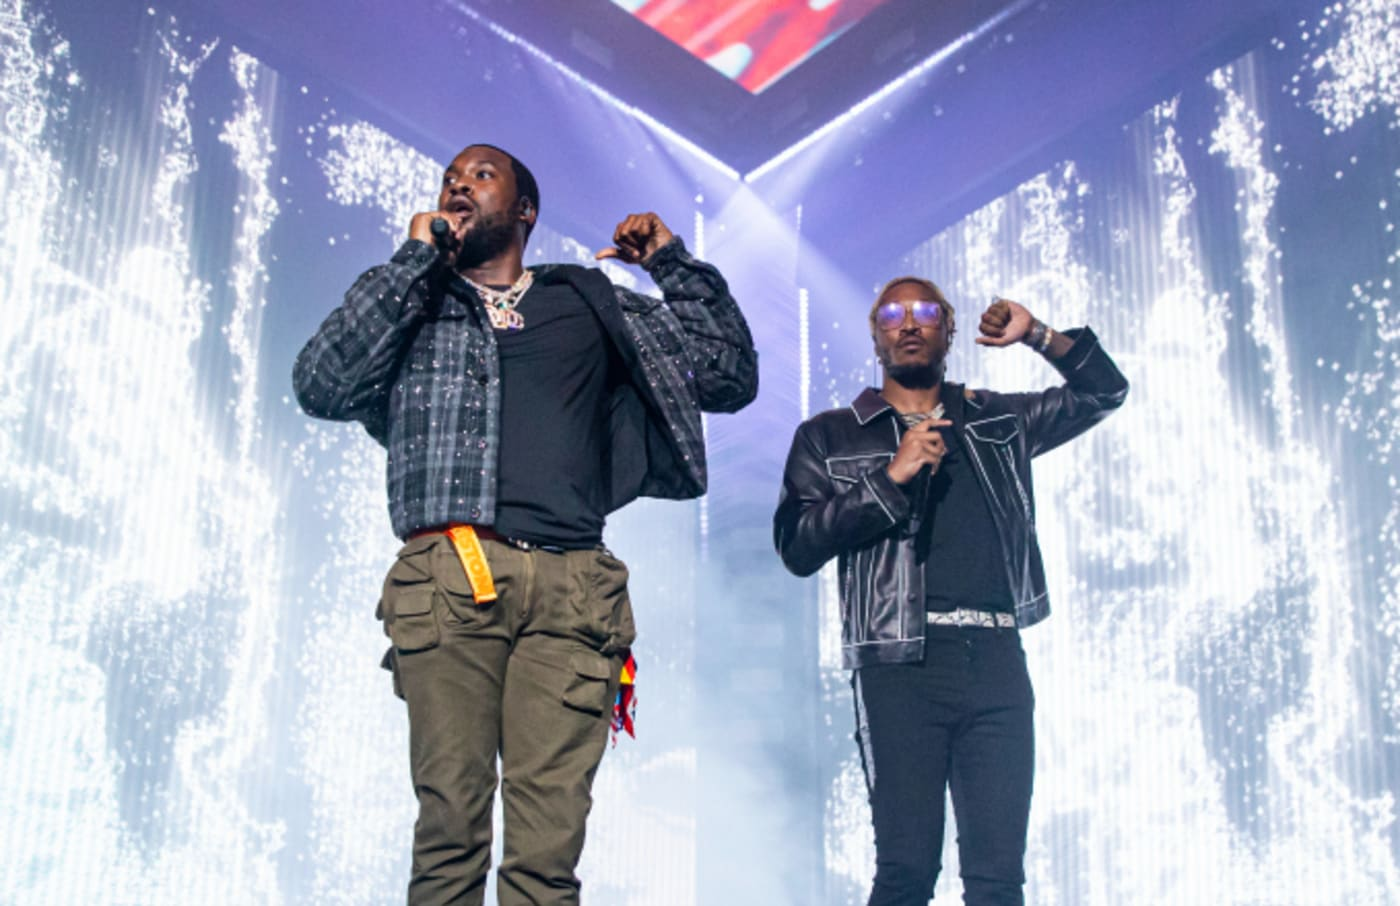 Rappers Meek Mill (L) and Future perform